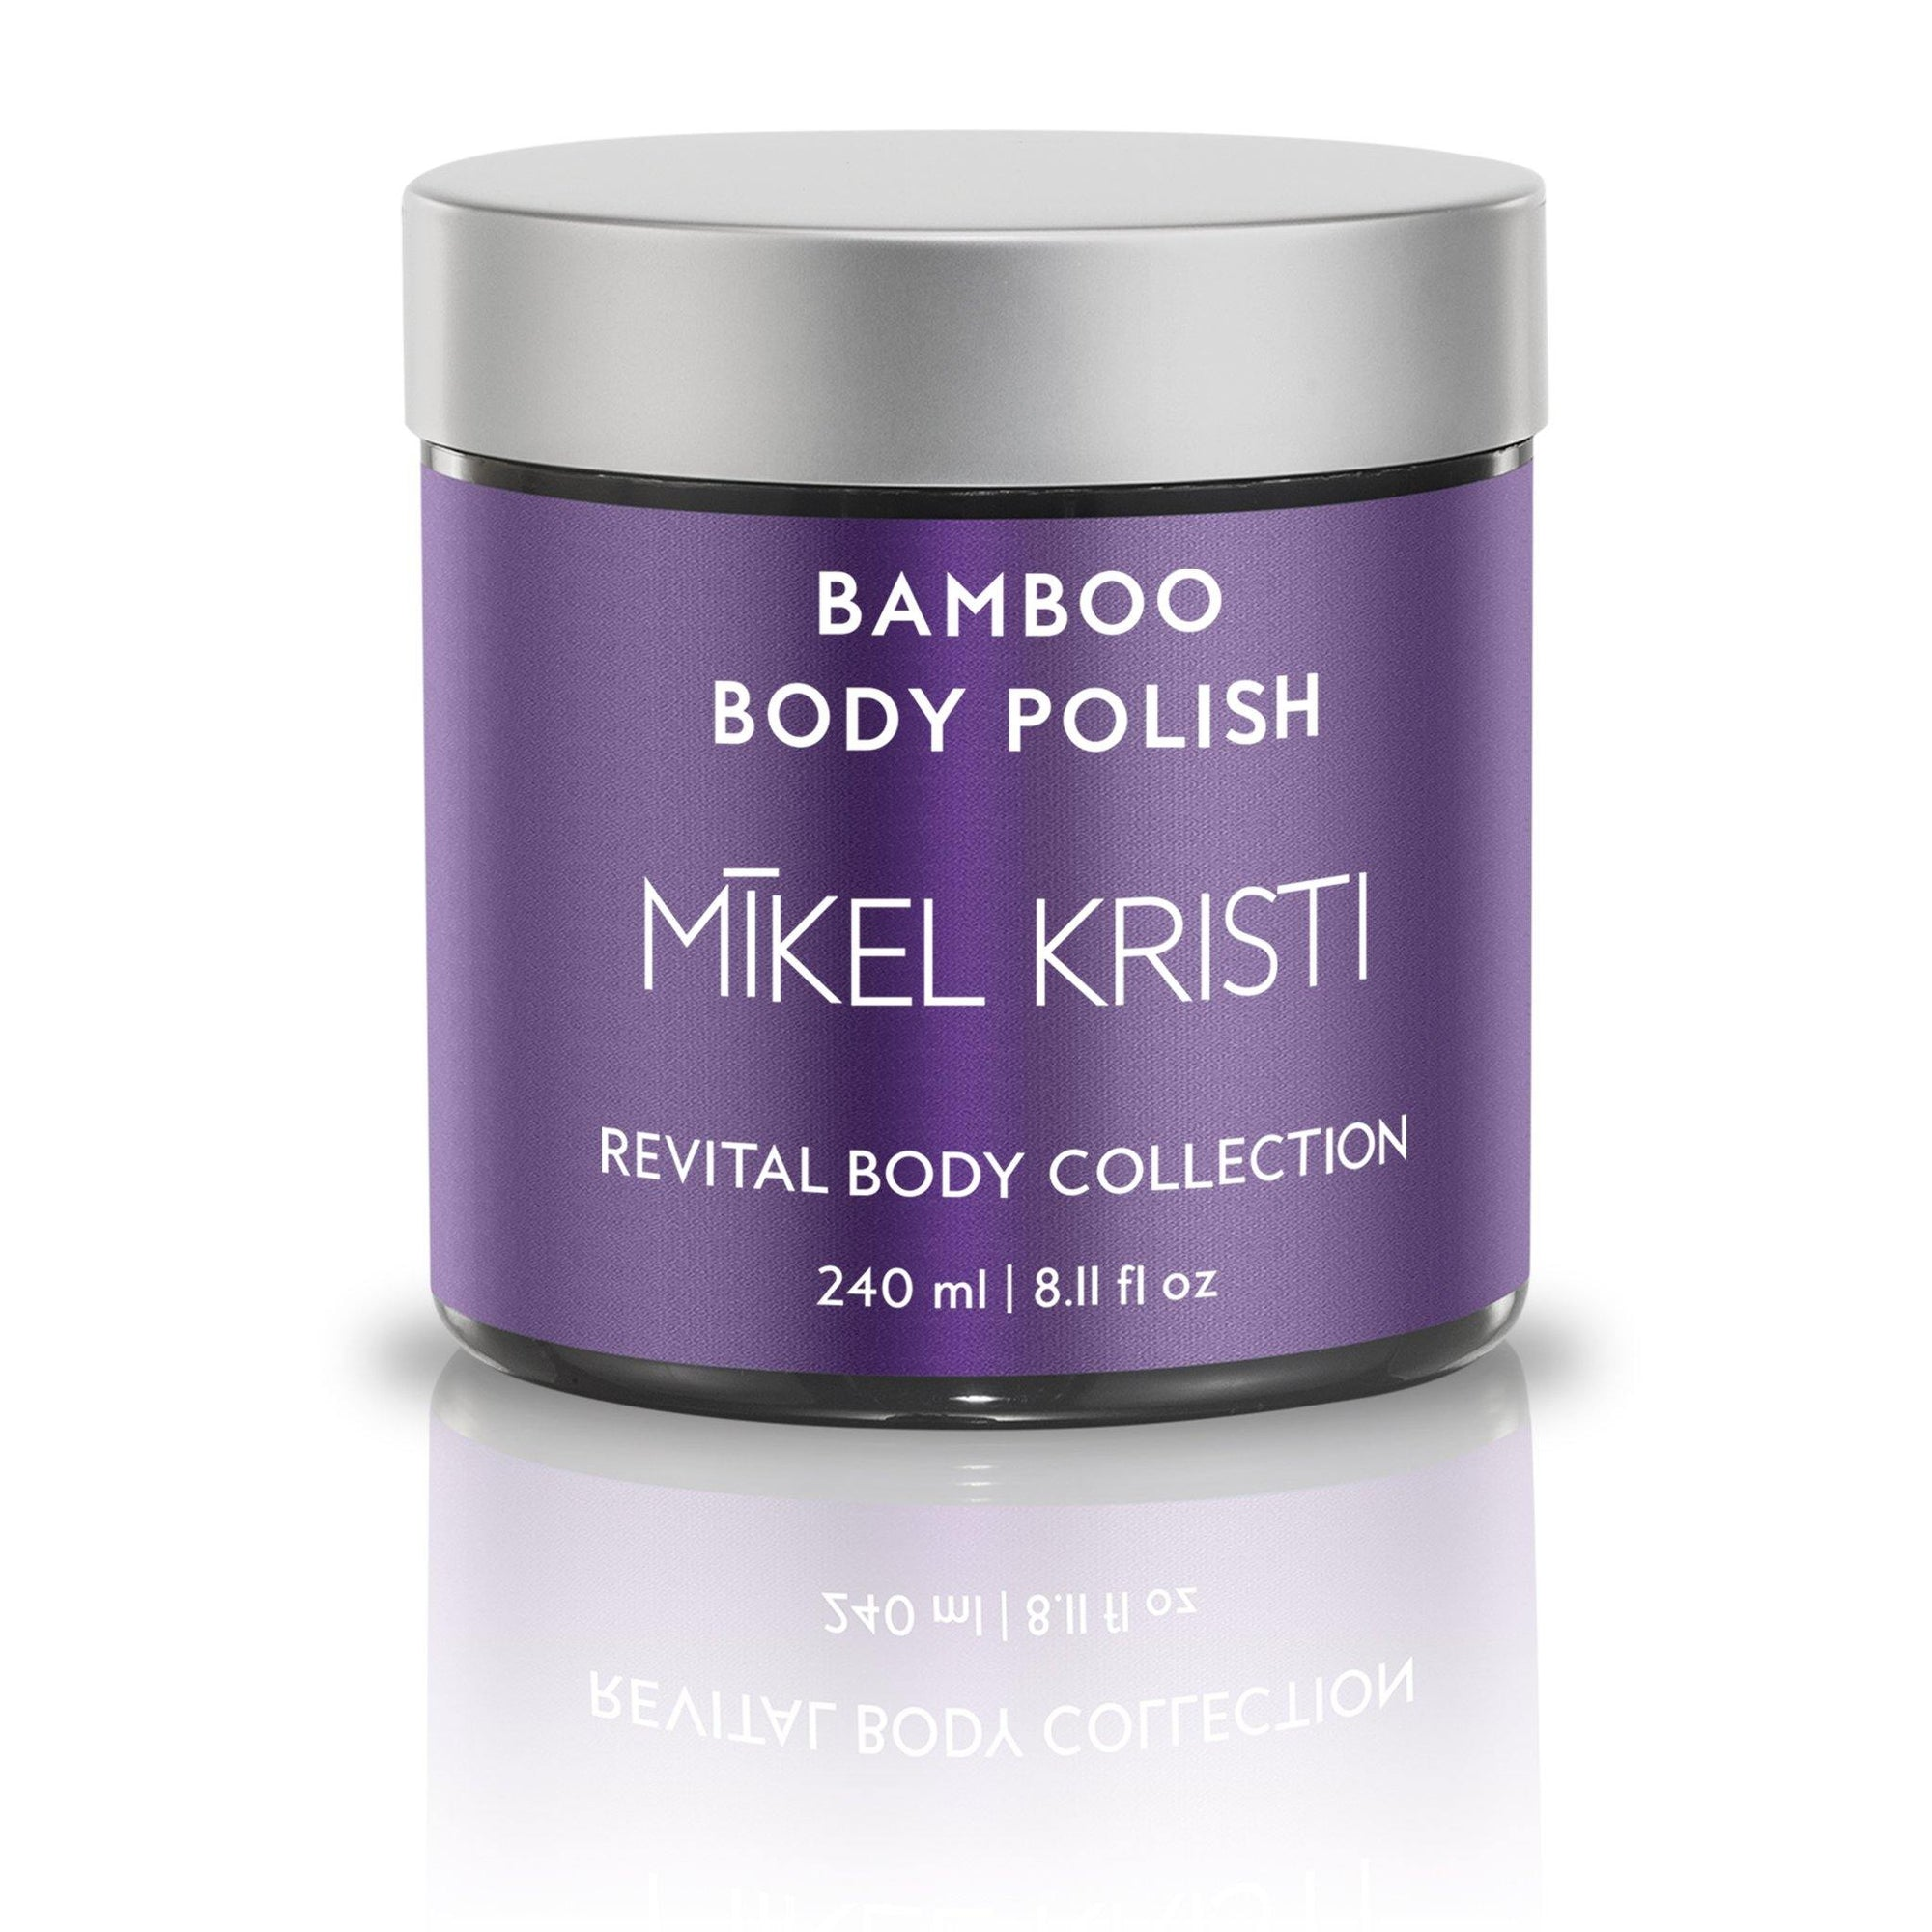 Bamboo Smoothing Body Polish by Mikel Kristi Skincare 8oz jar with plumb label